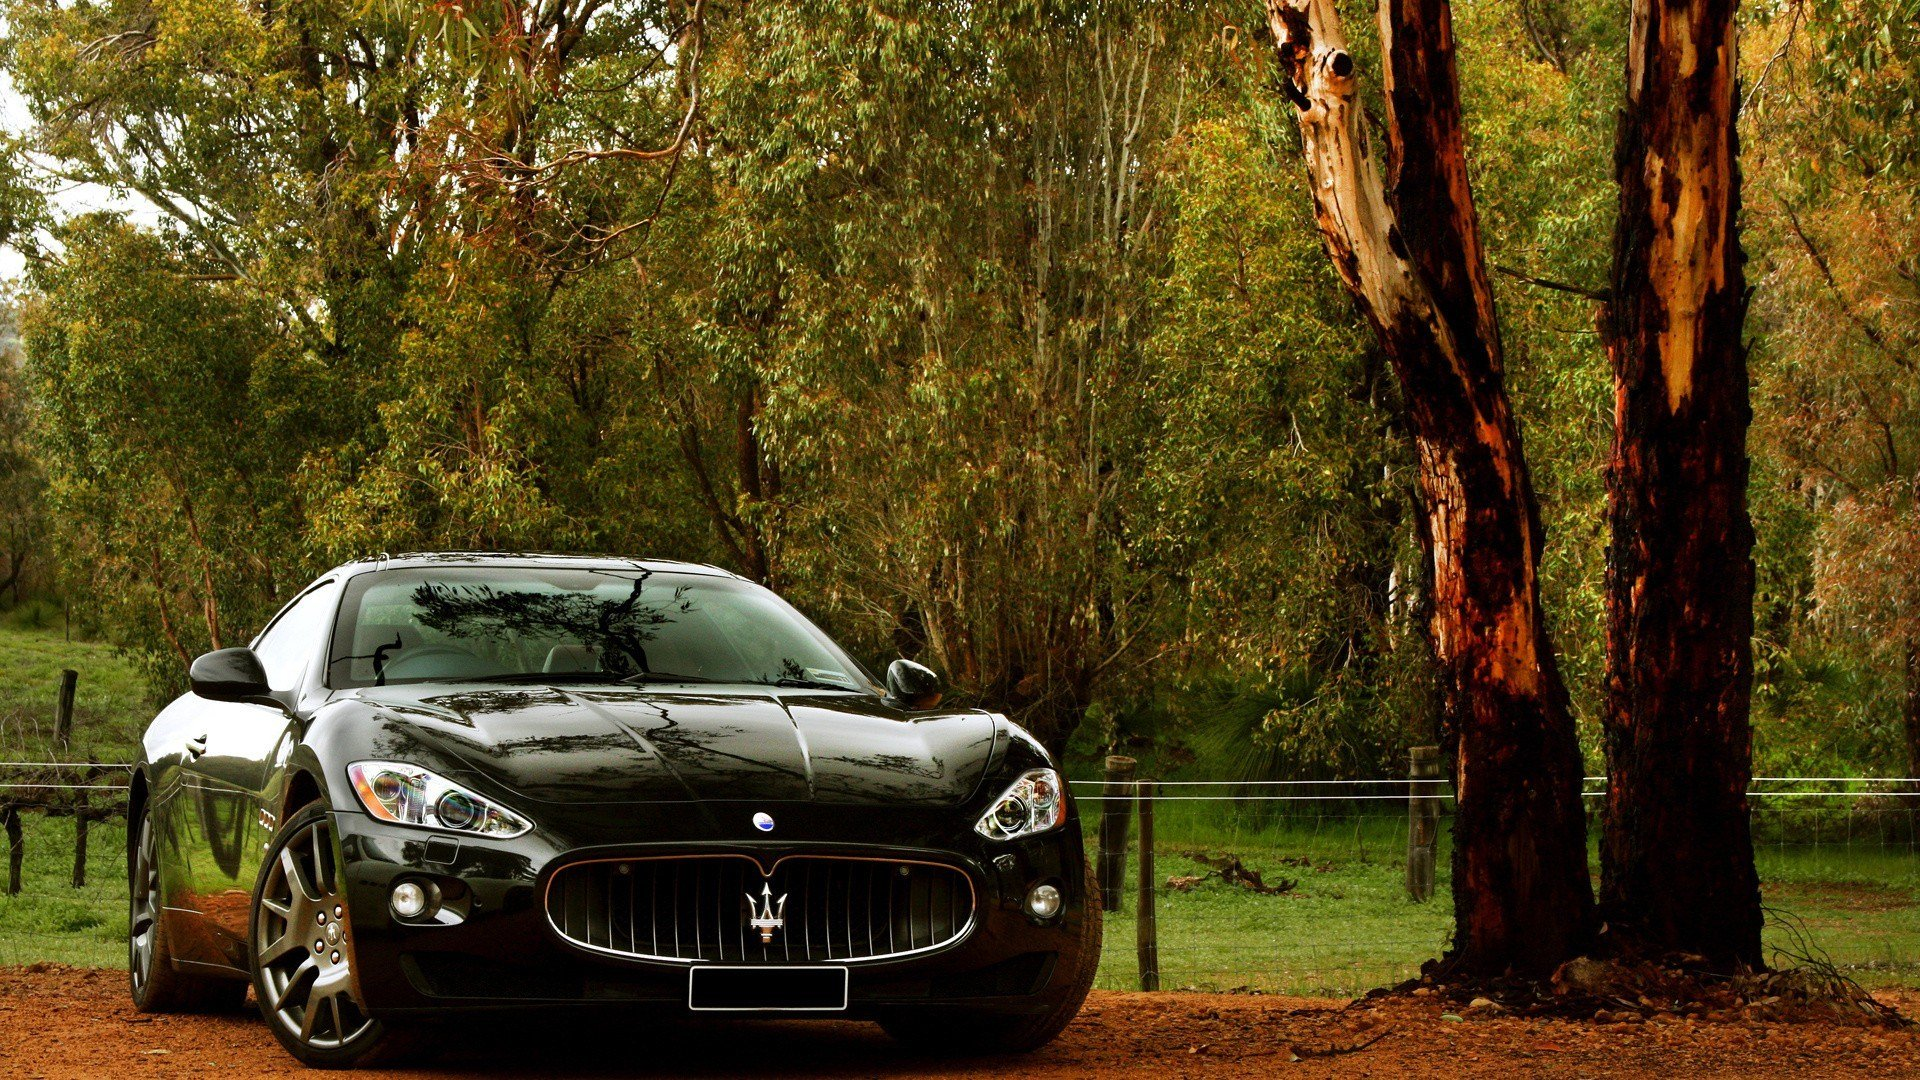 Latest Maserati Car Wallpapers Page Hd Car Wallpapers 1920X1080 Free Download